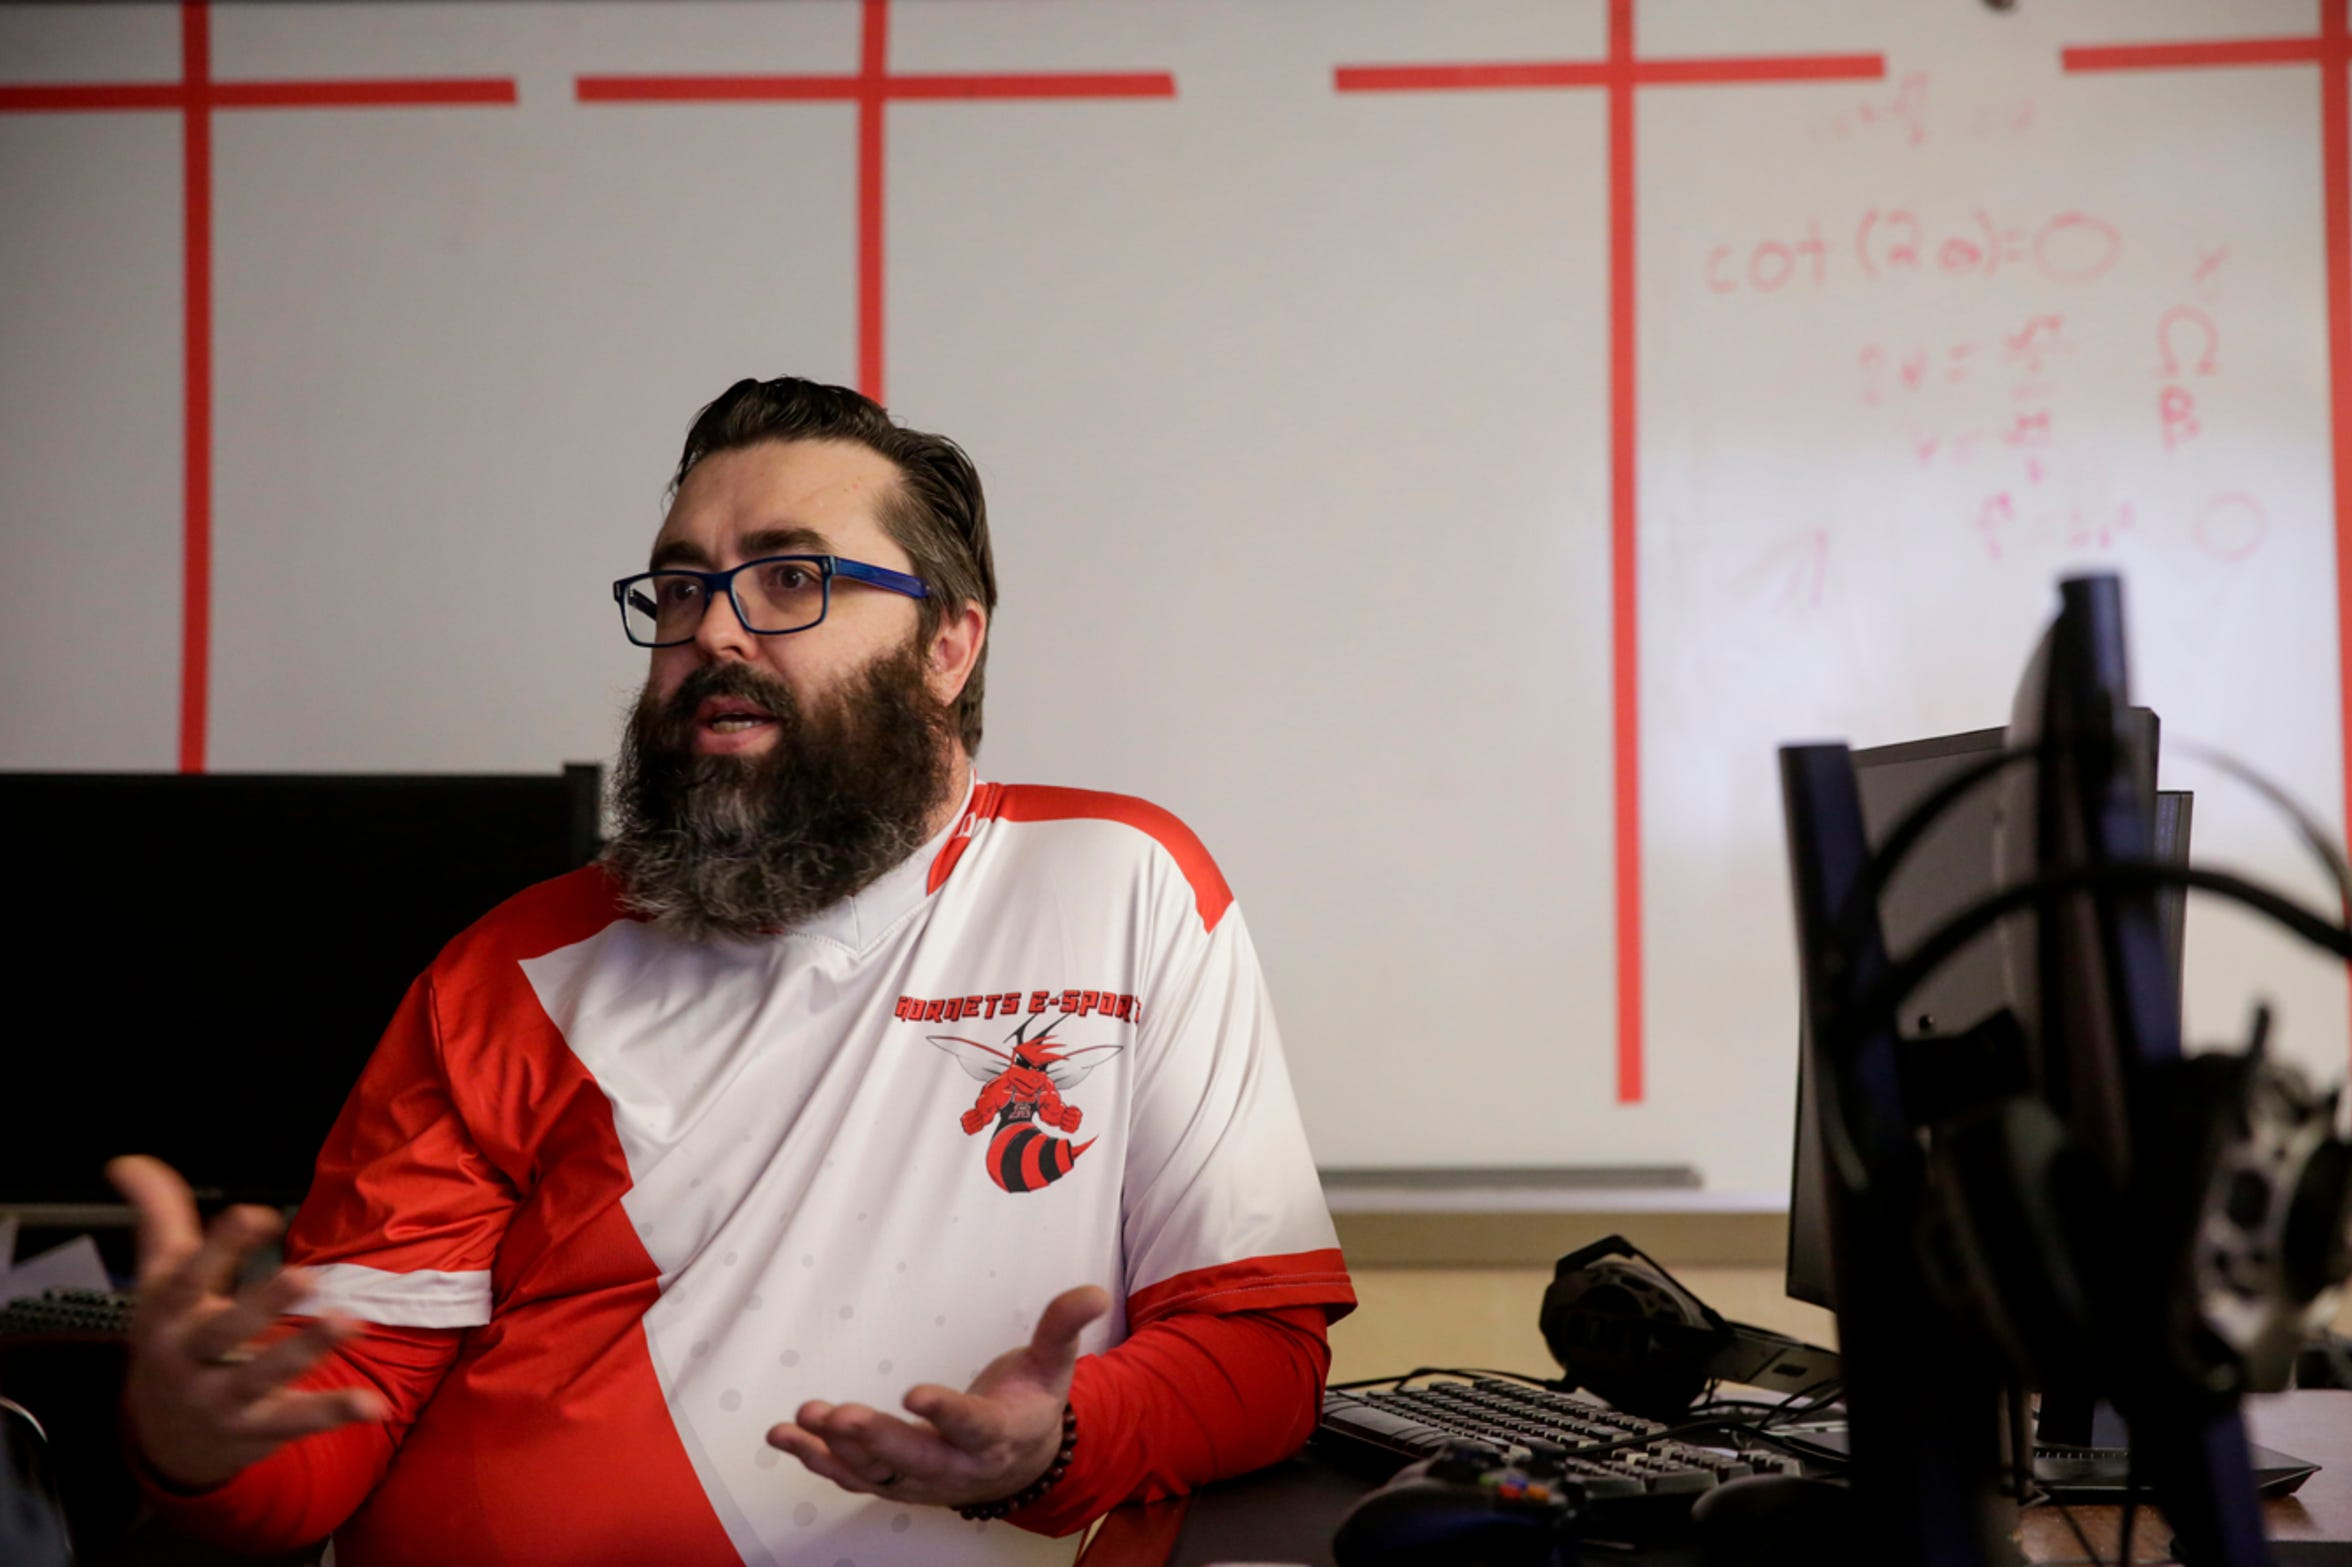 Ben Underwood, esports coordinator, talks about the club and one of the students signing to play with a local university, Monday, April 15, 2019, at Rossville High School in Rossville. Nolan Starkey signed his letter of intent to play esports at Trine University in Angola, Ind.